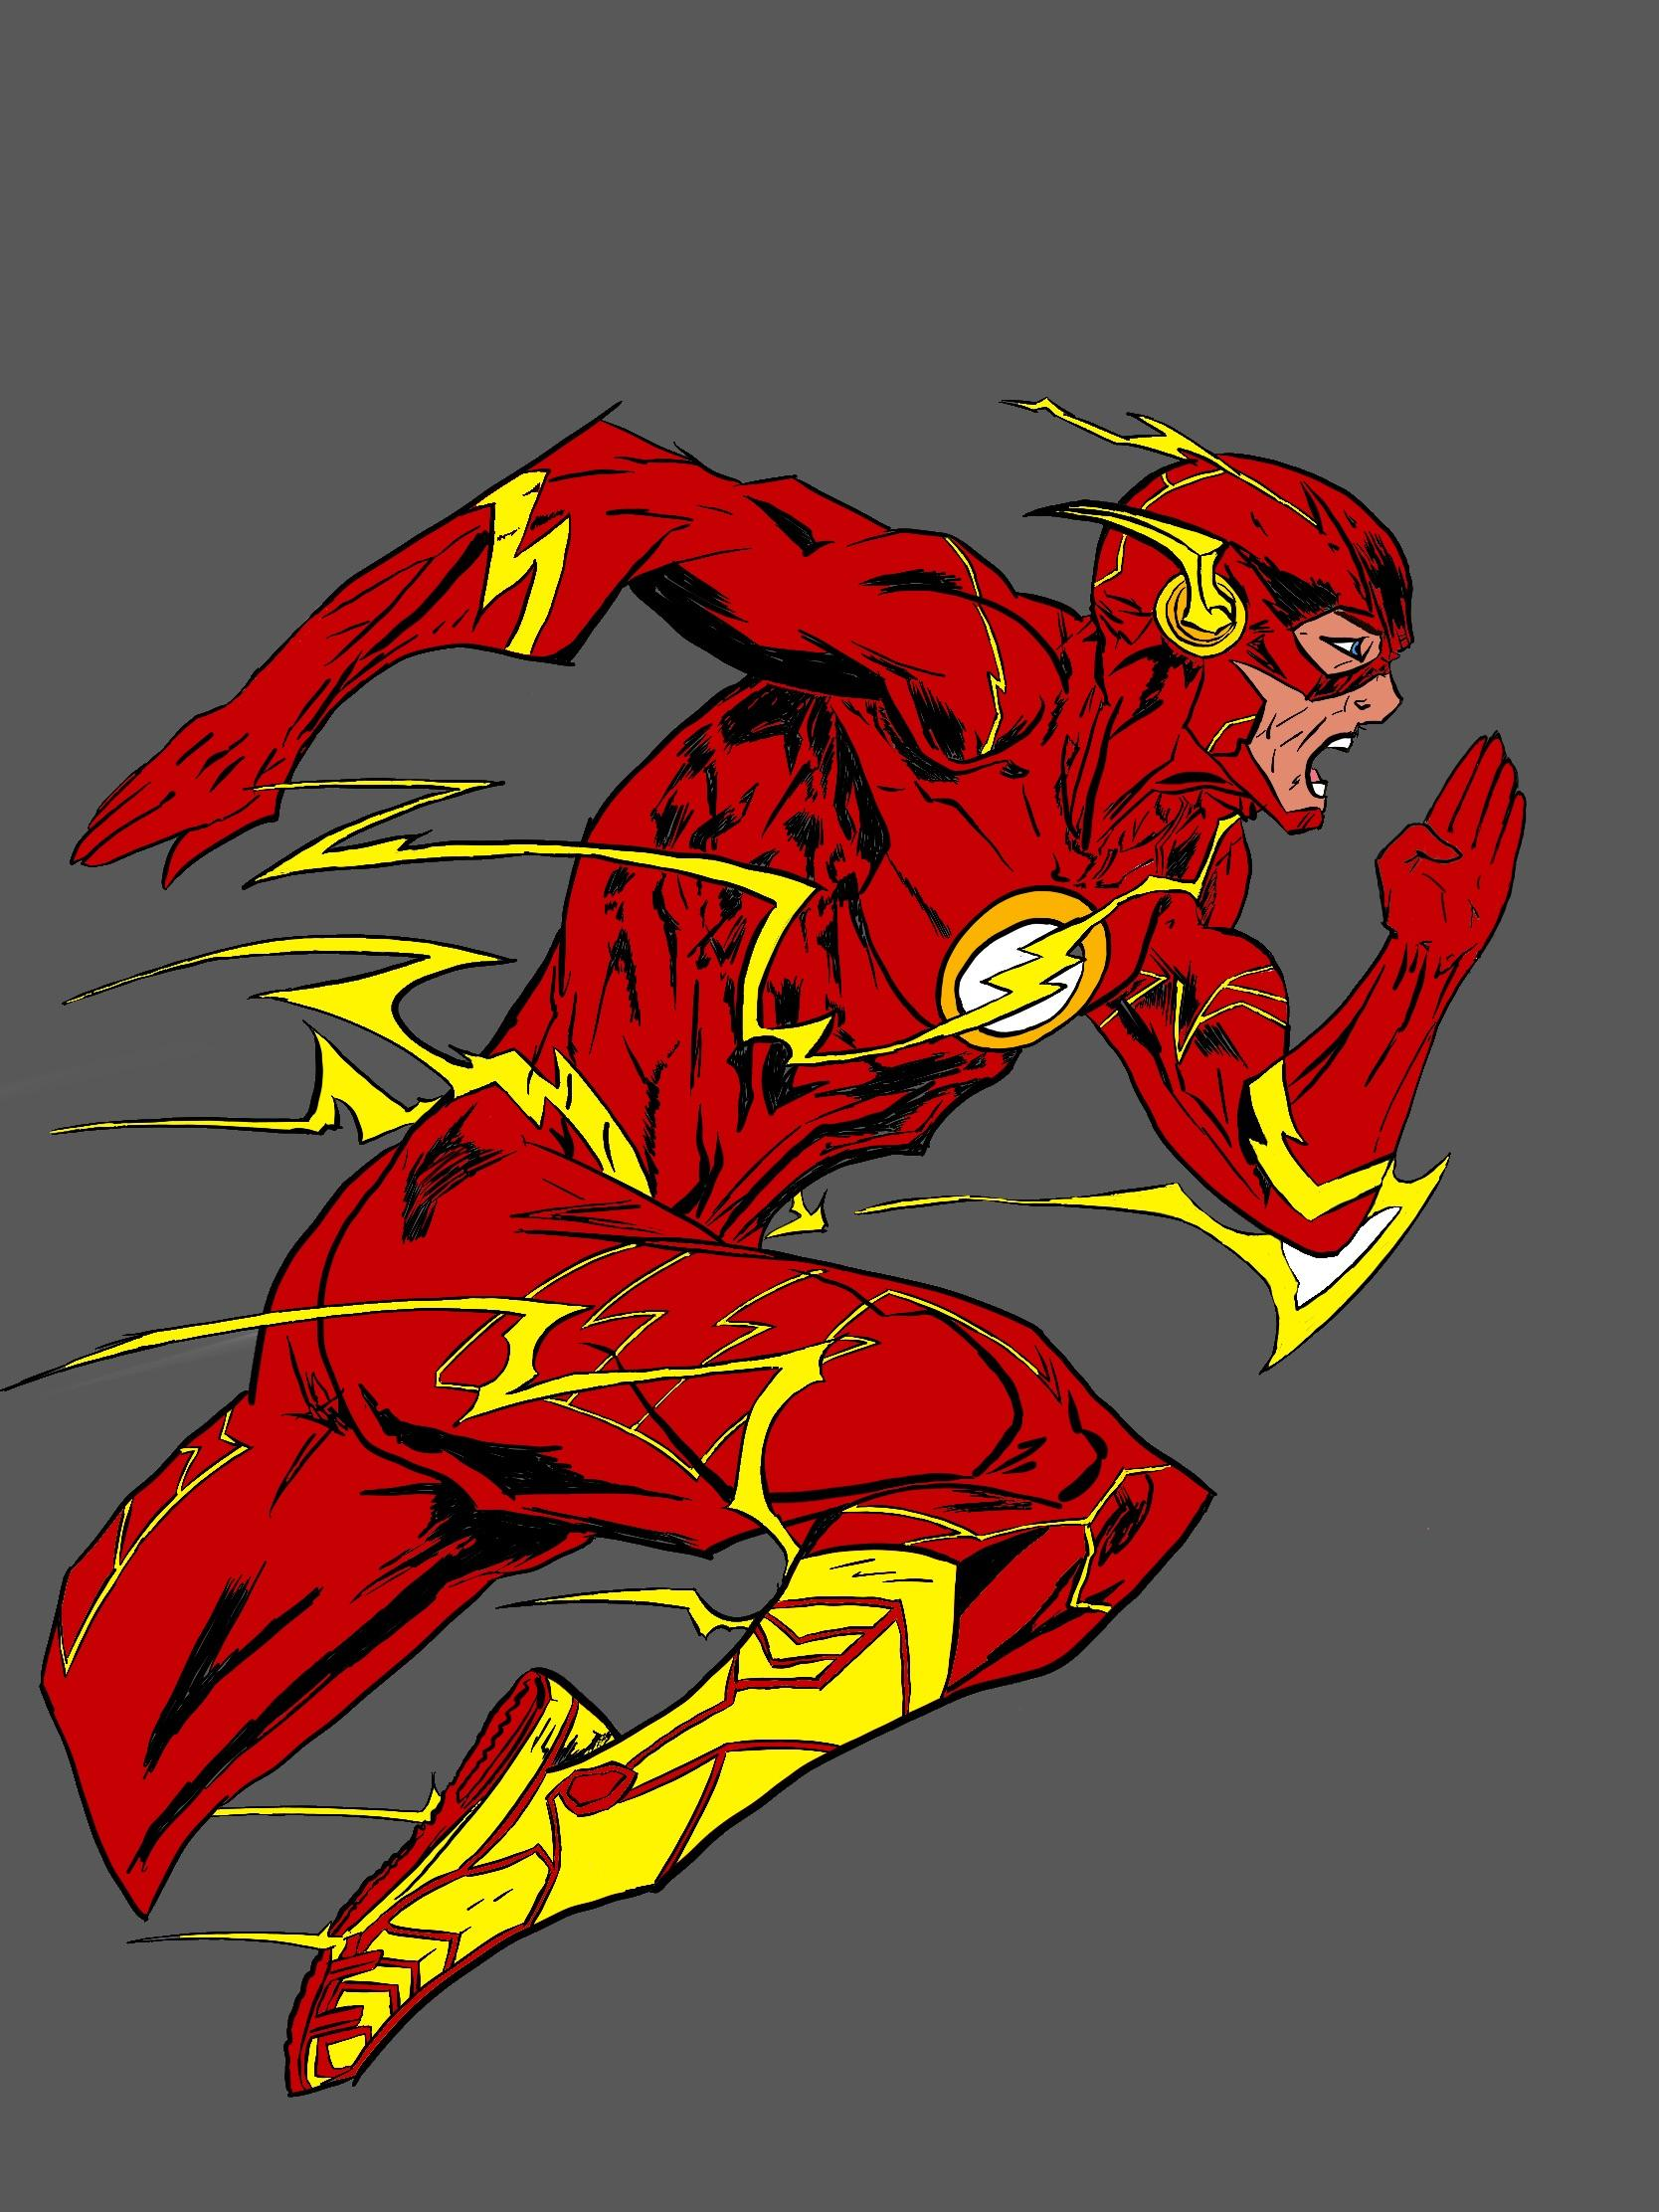 The Flash Cartoon Drawing : flash, cartoon, drawing, Digital, Drawing, Flash!, Theflash